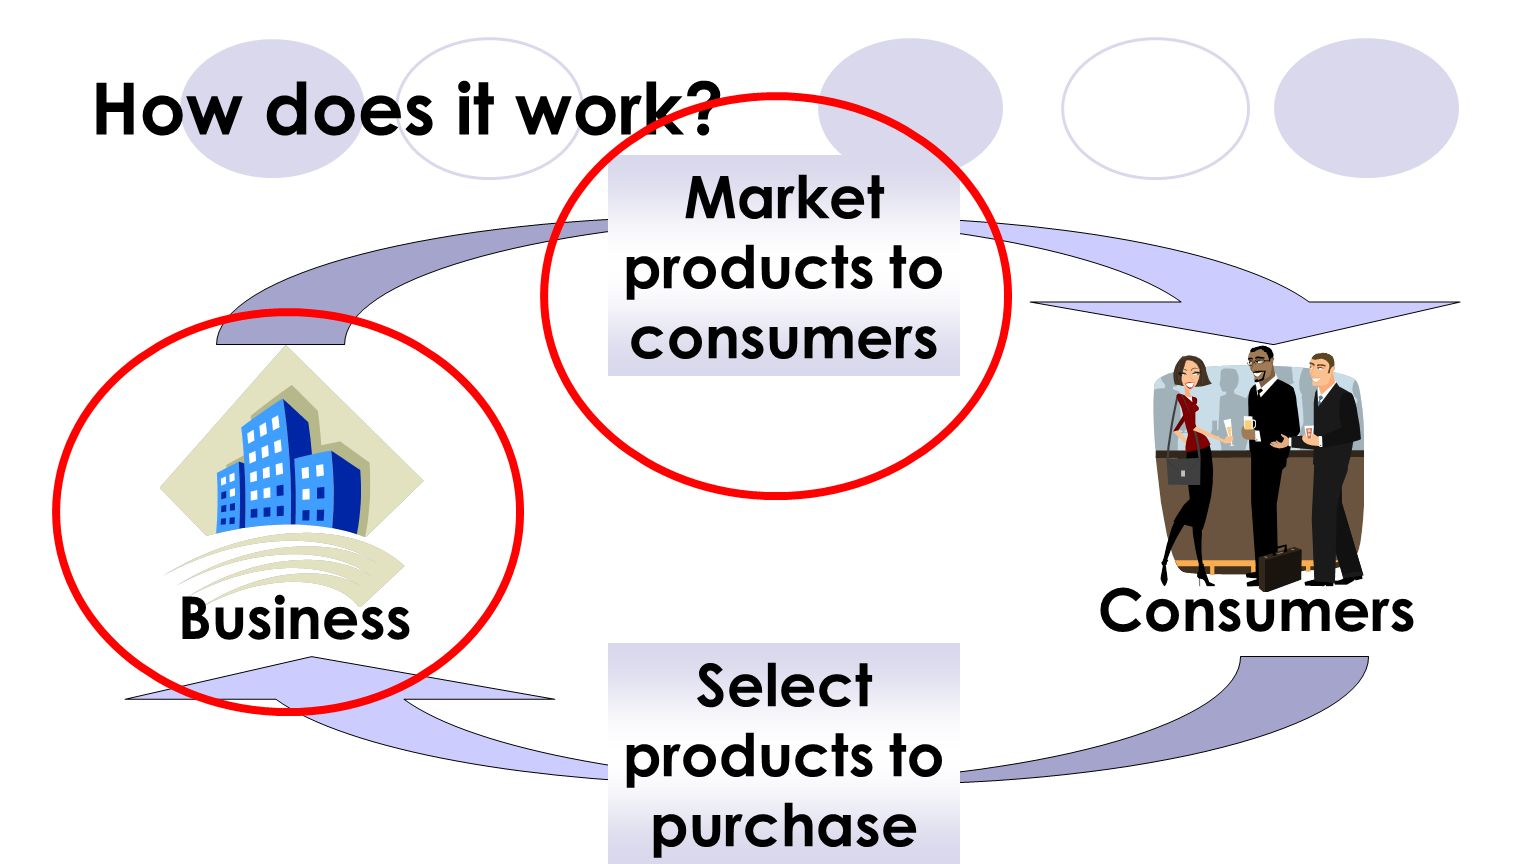 Market products to consumers Select products to purchase